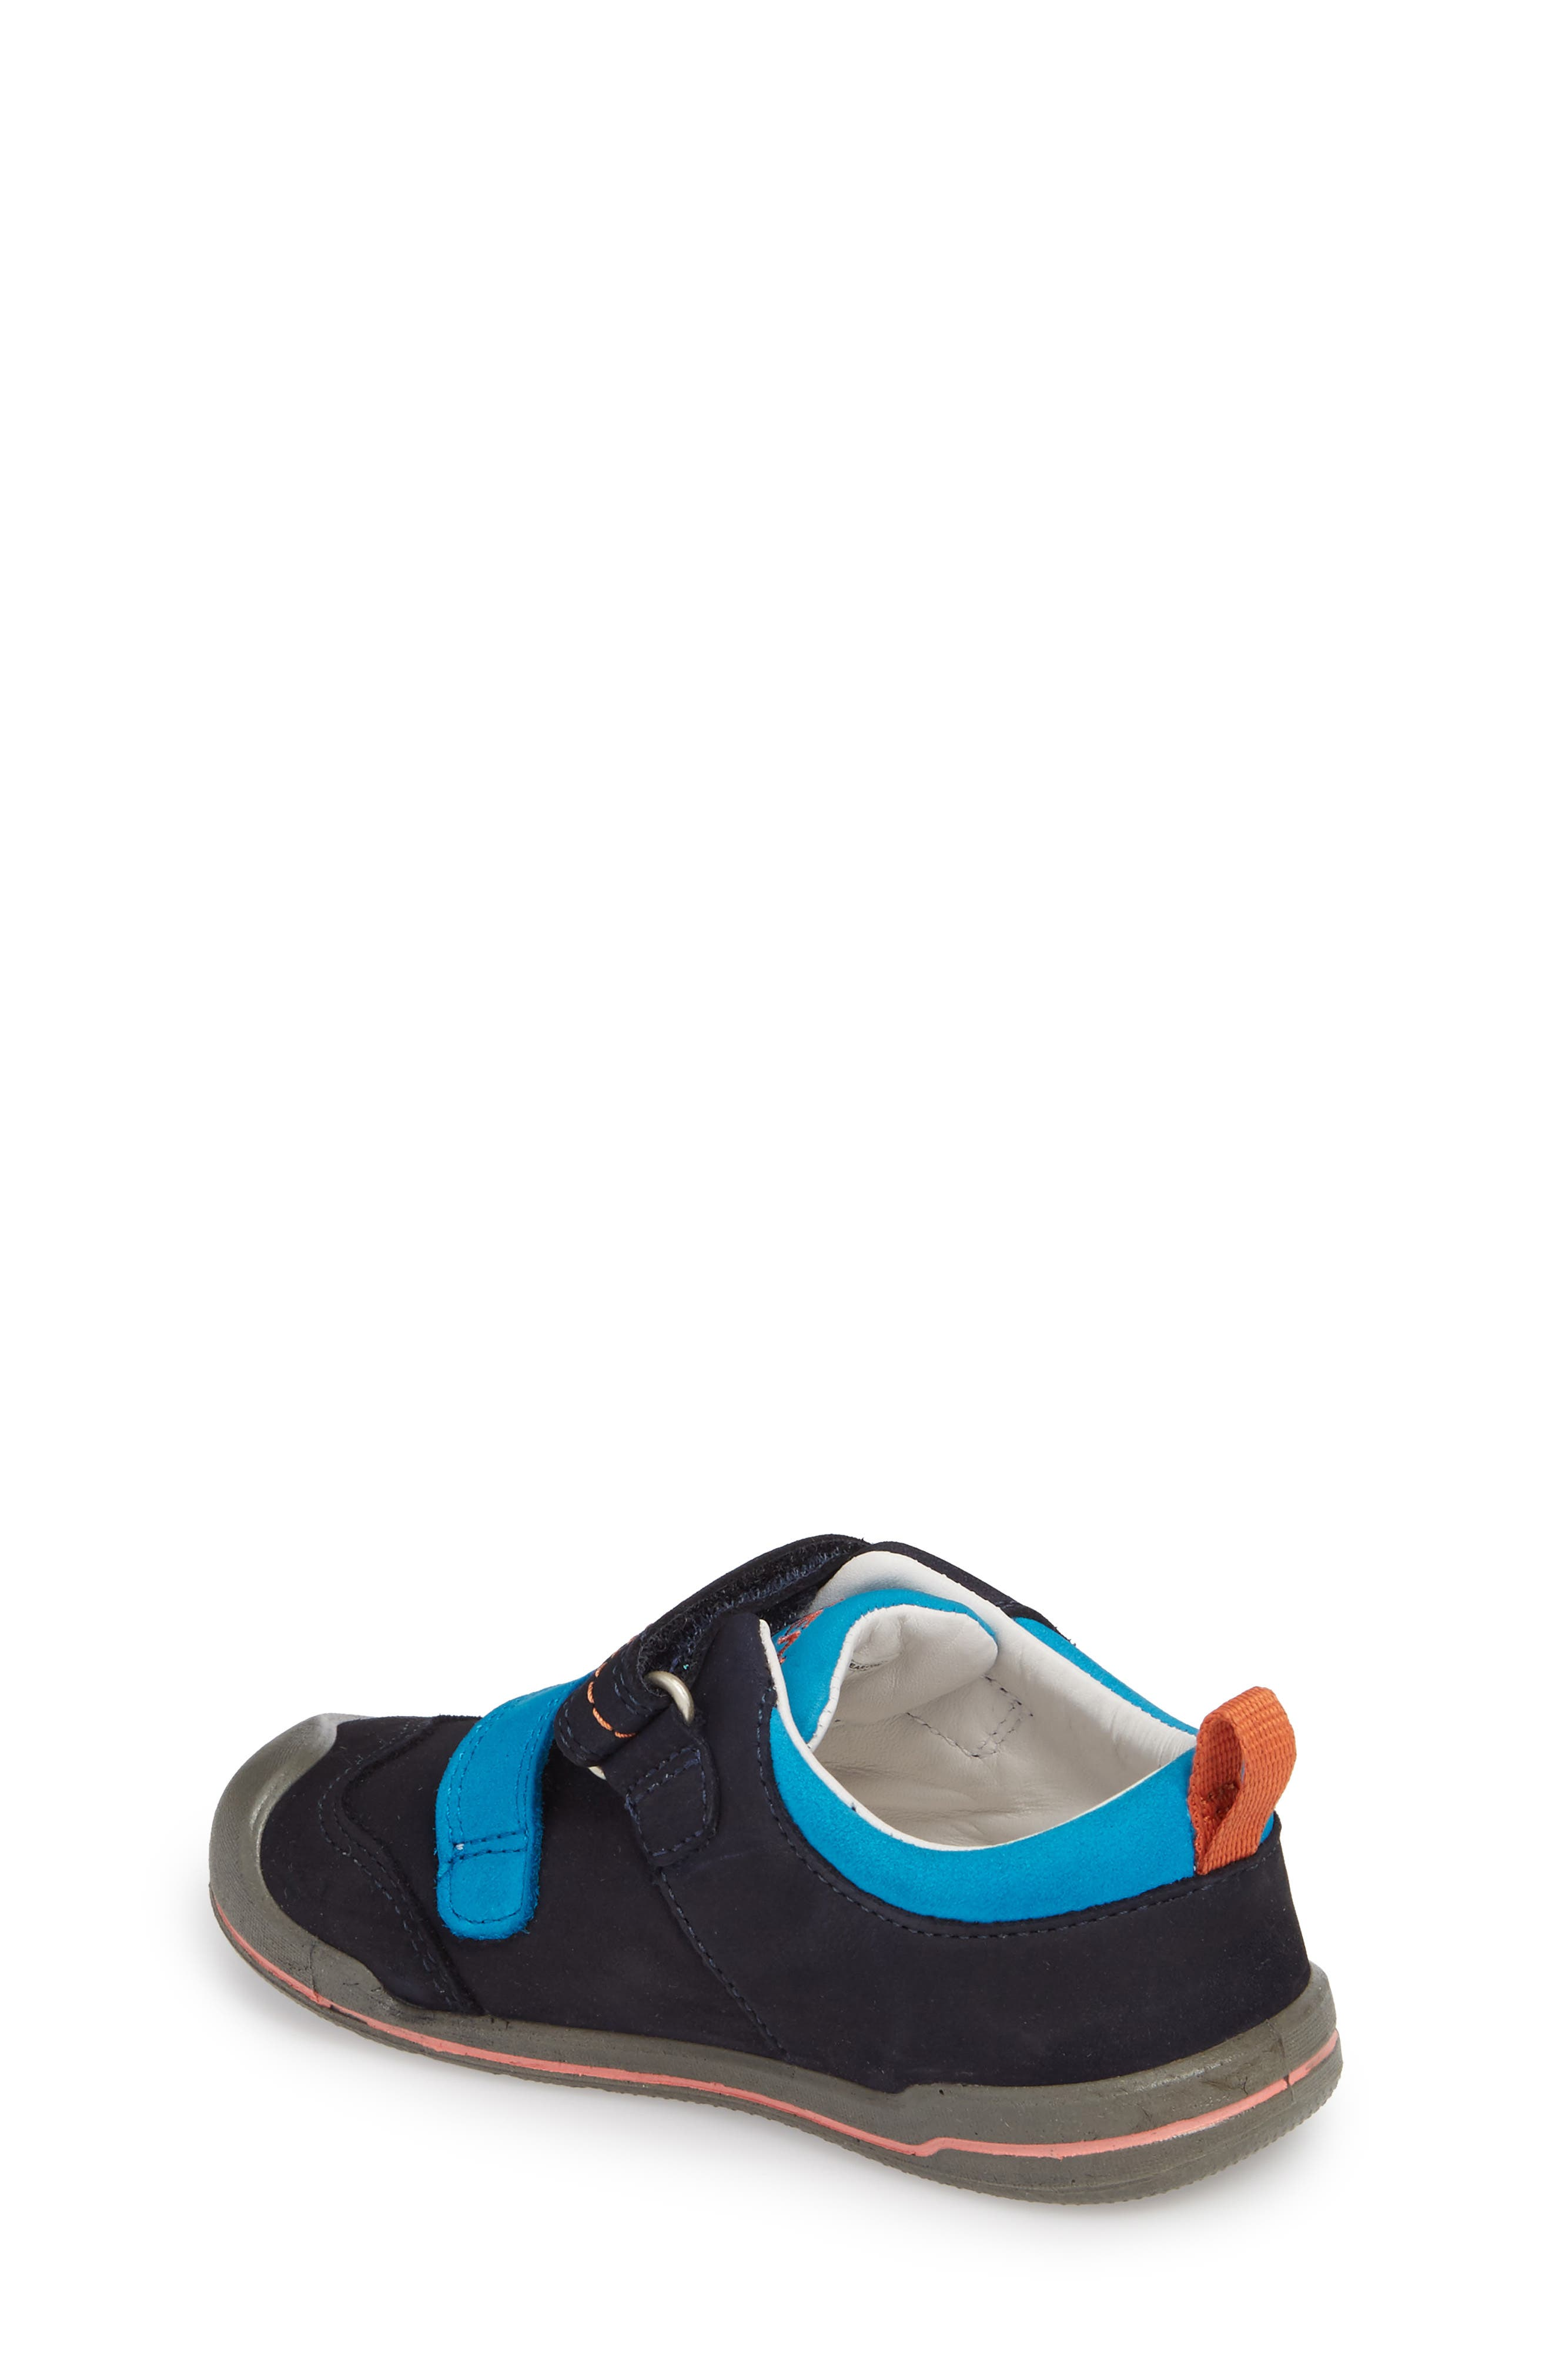 Sprout Double Strap Sneaker,                             Alternate thumbnail 2, color,                             Dress Blues/ Koi